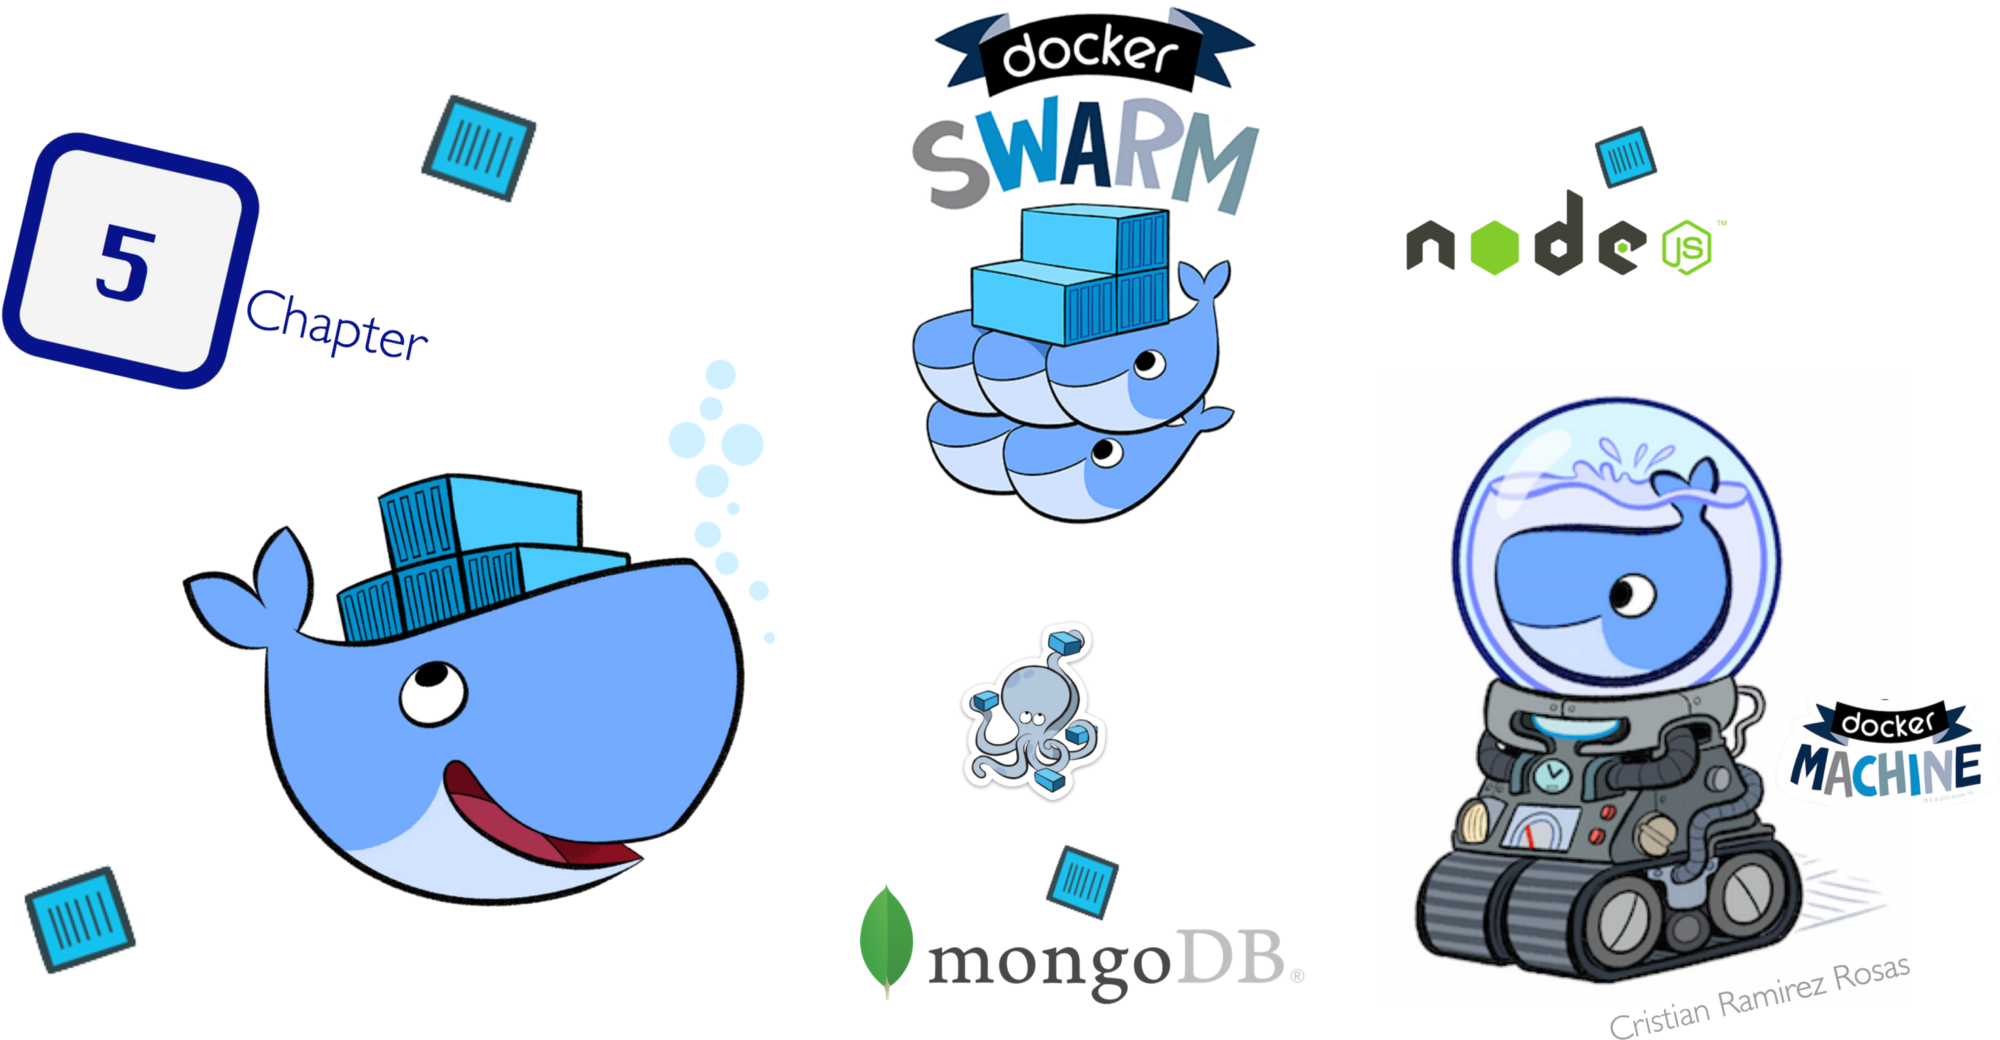 Number 1 clipart one more thing. Deploy nodejs microservices to